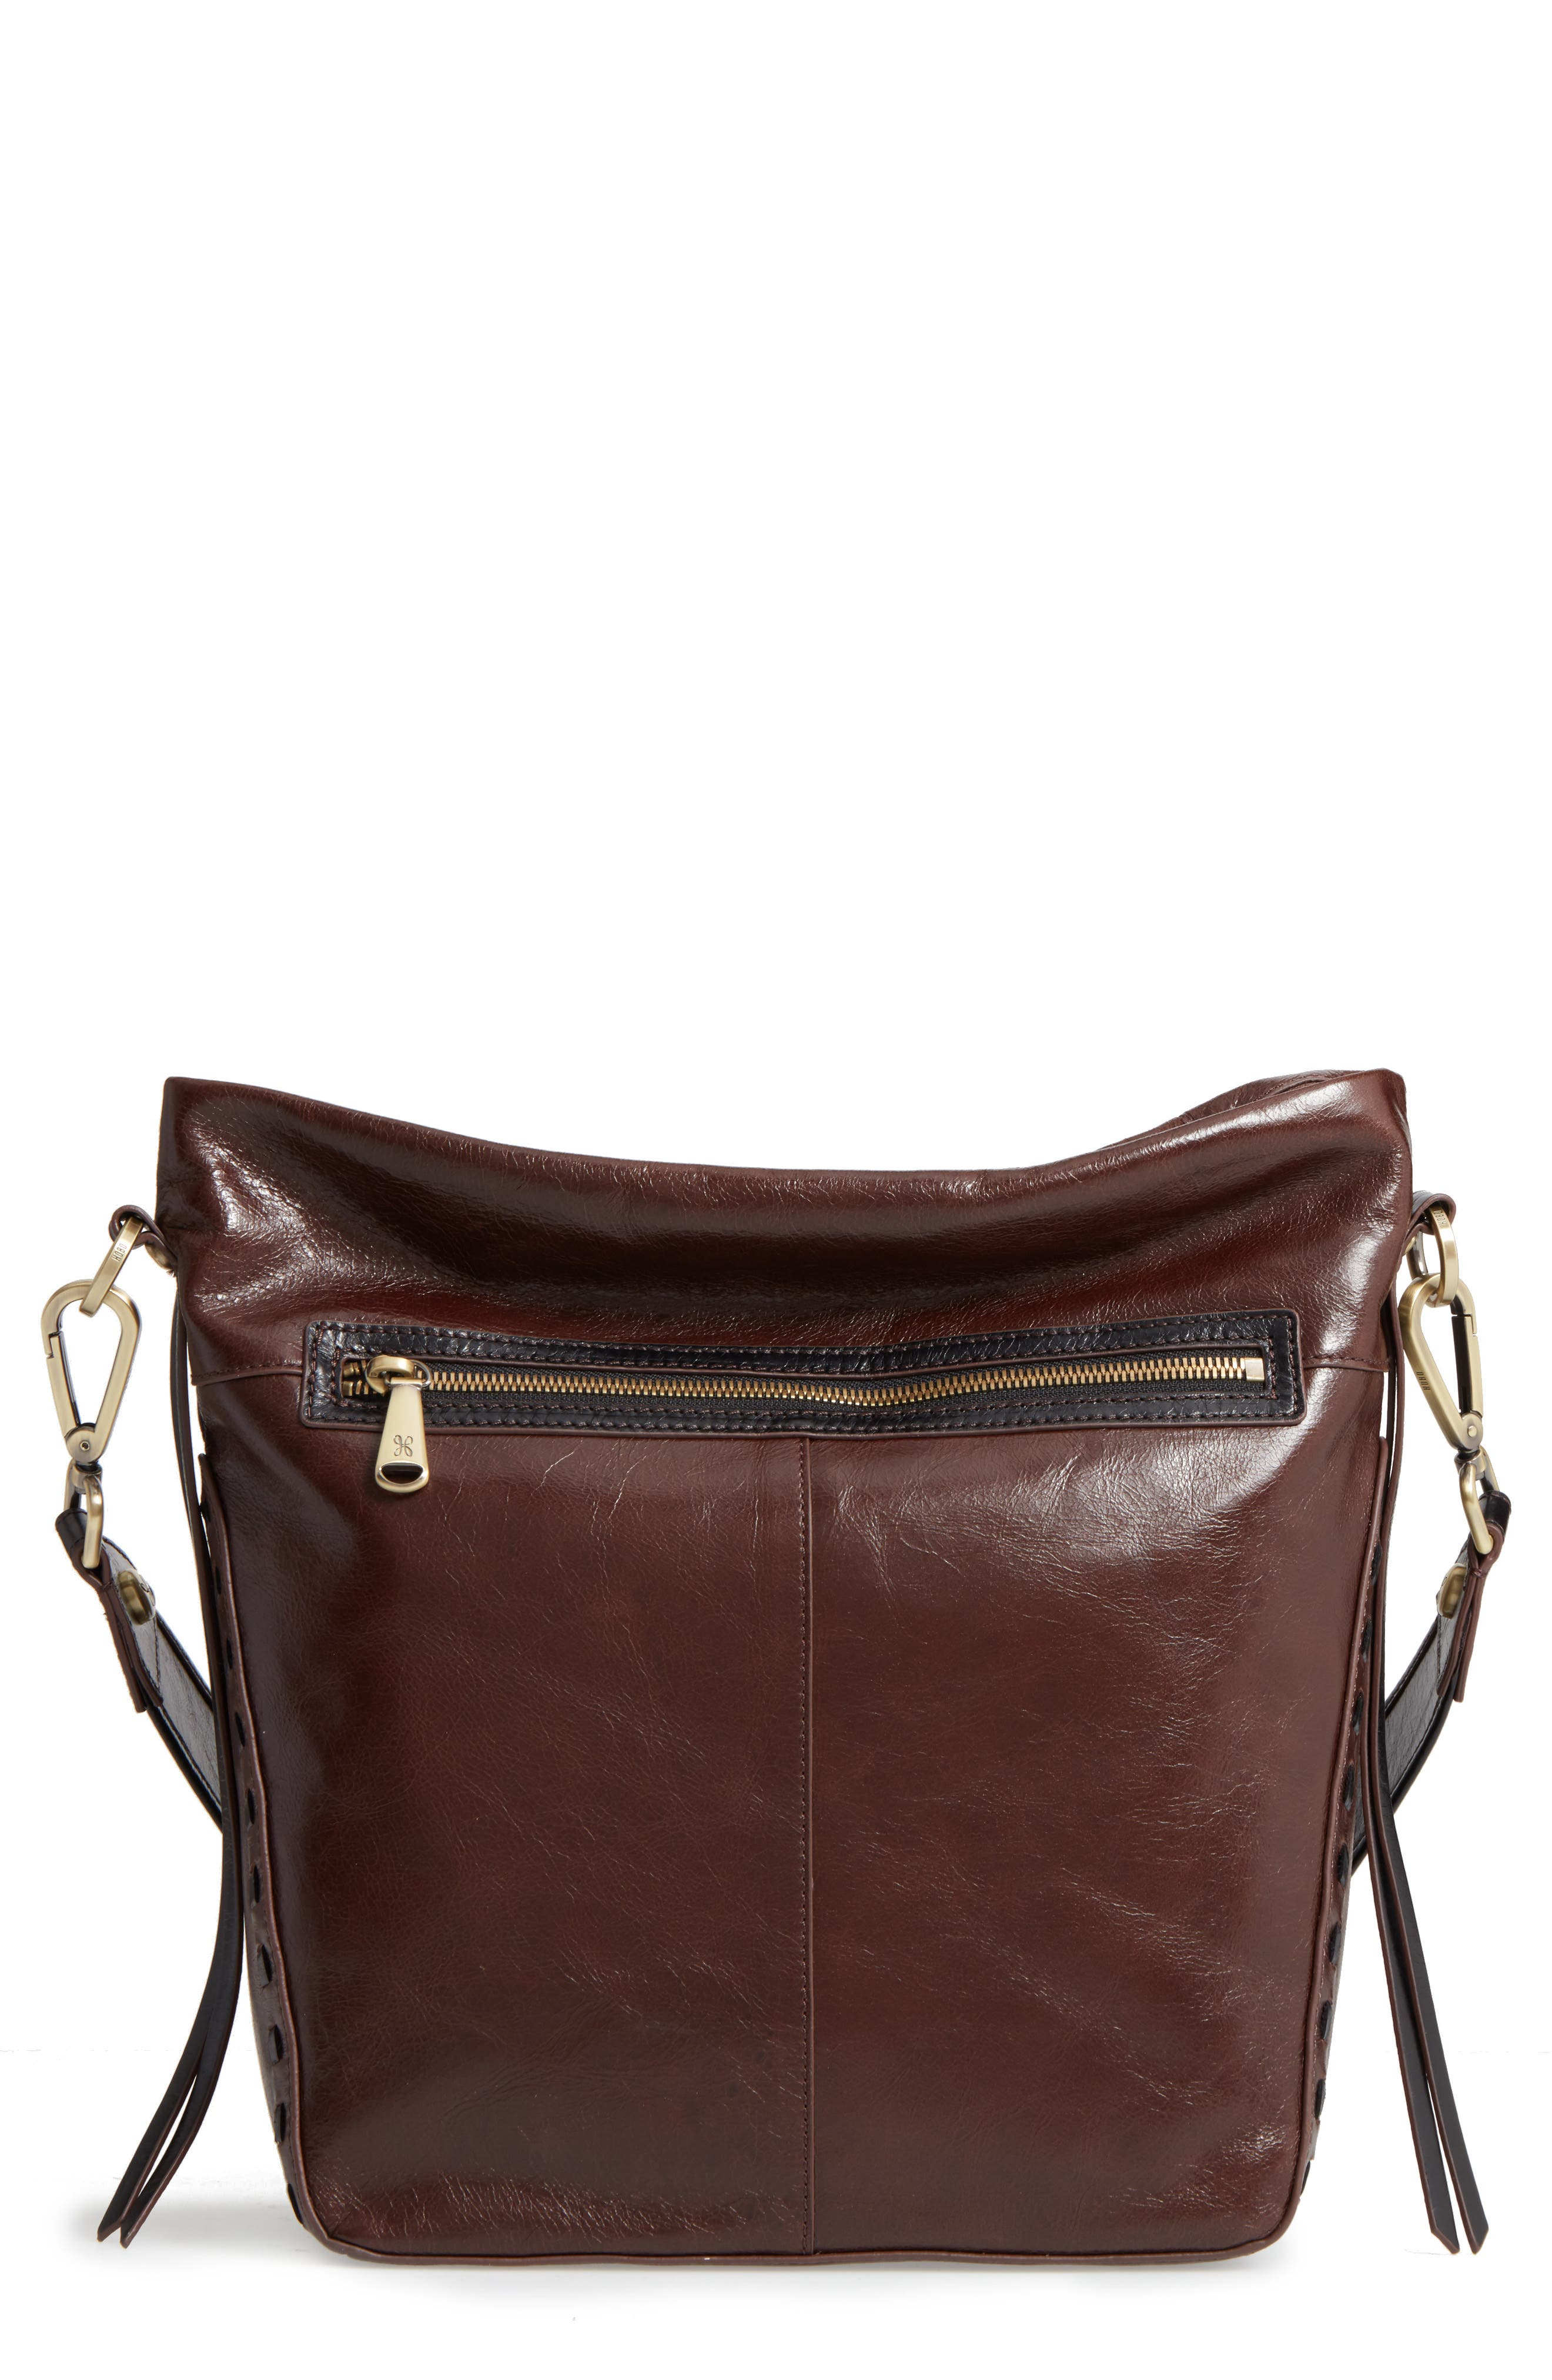 Hobo Banyon Calfskin Leather Bucket Bag